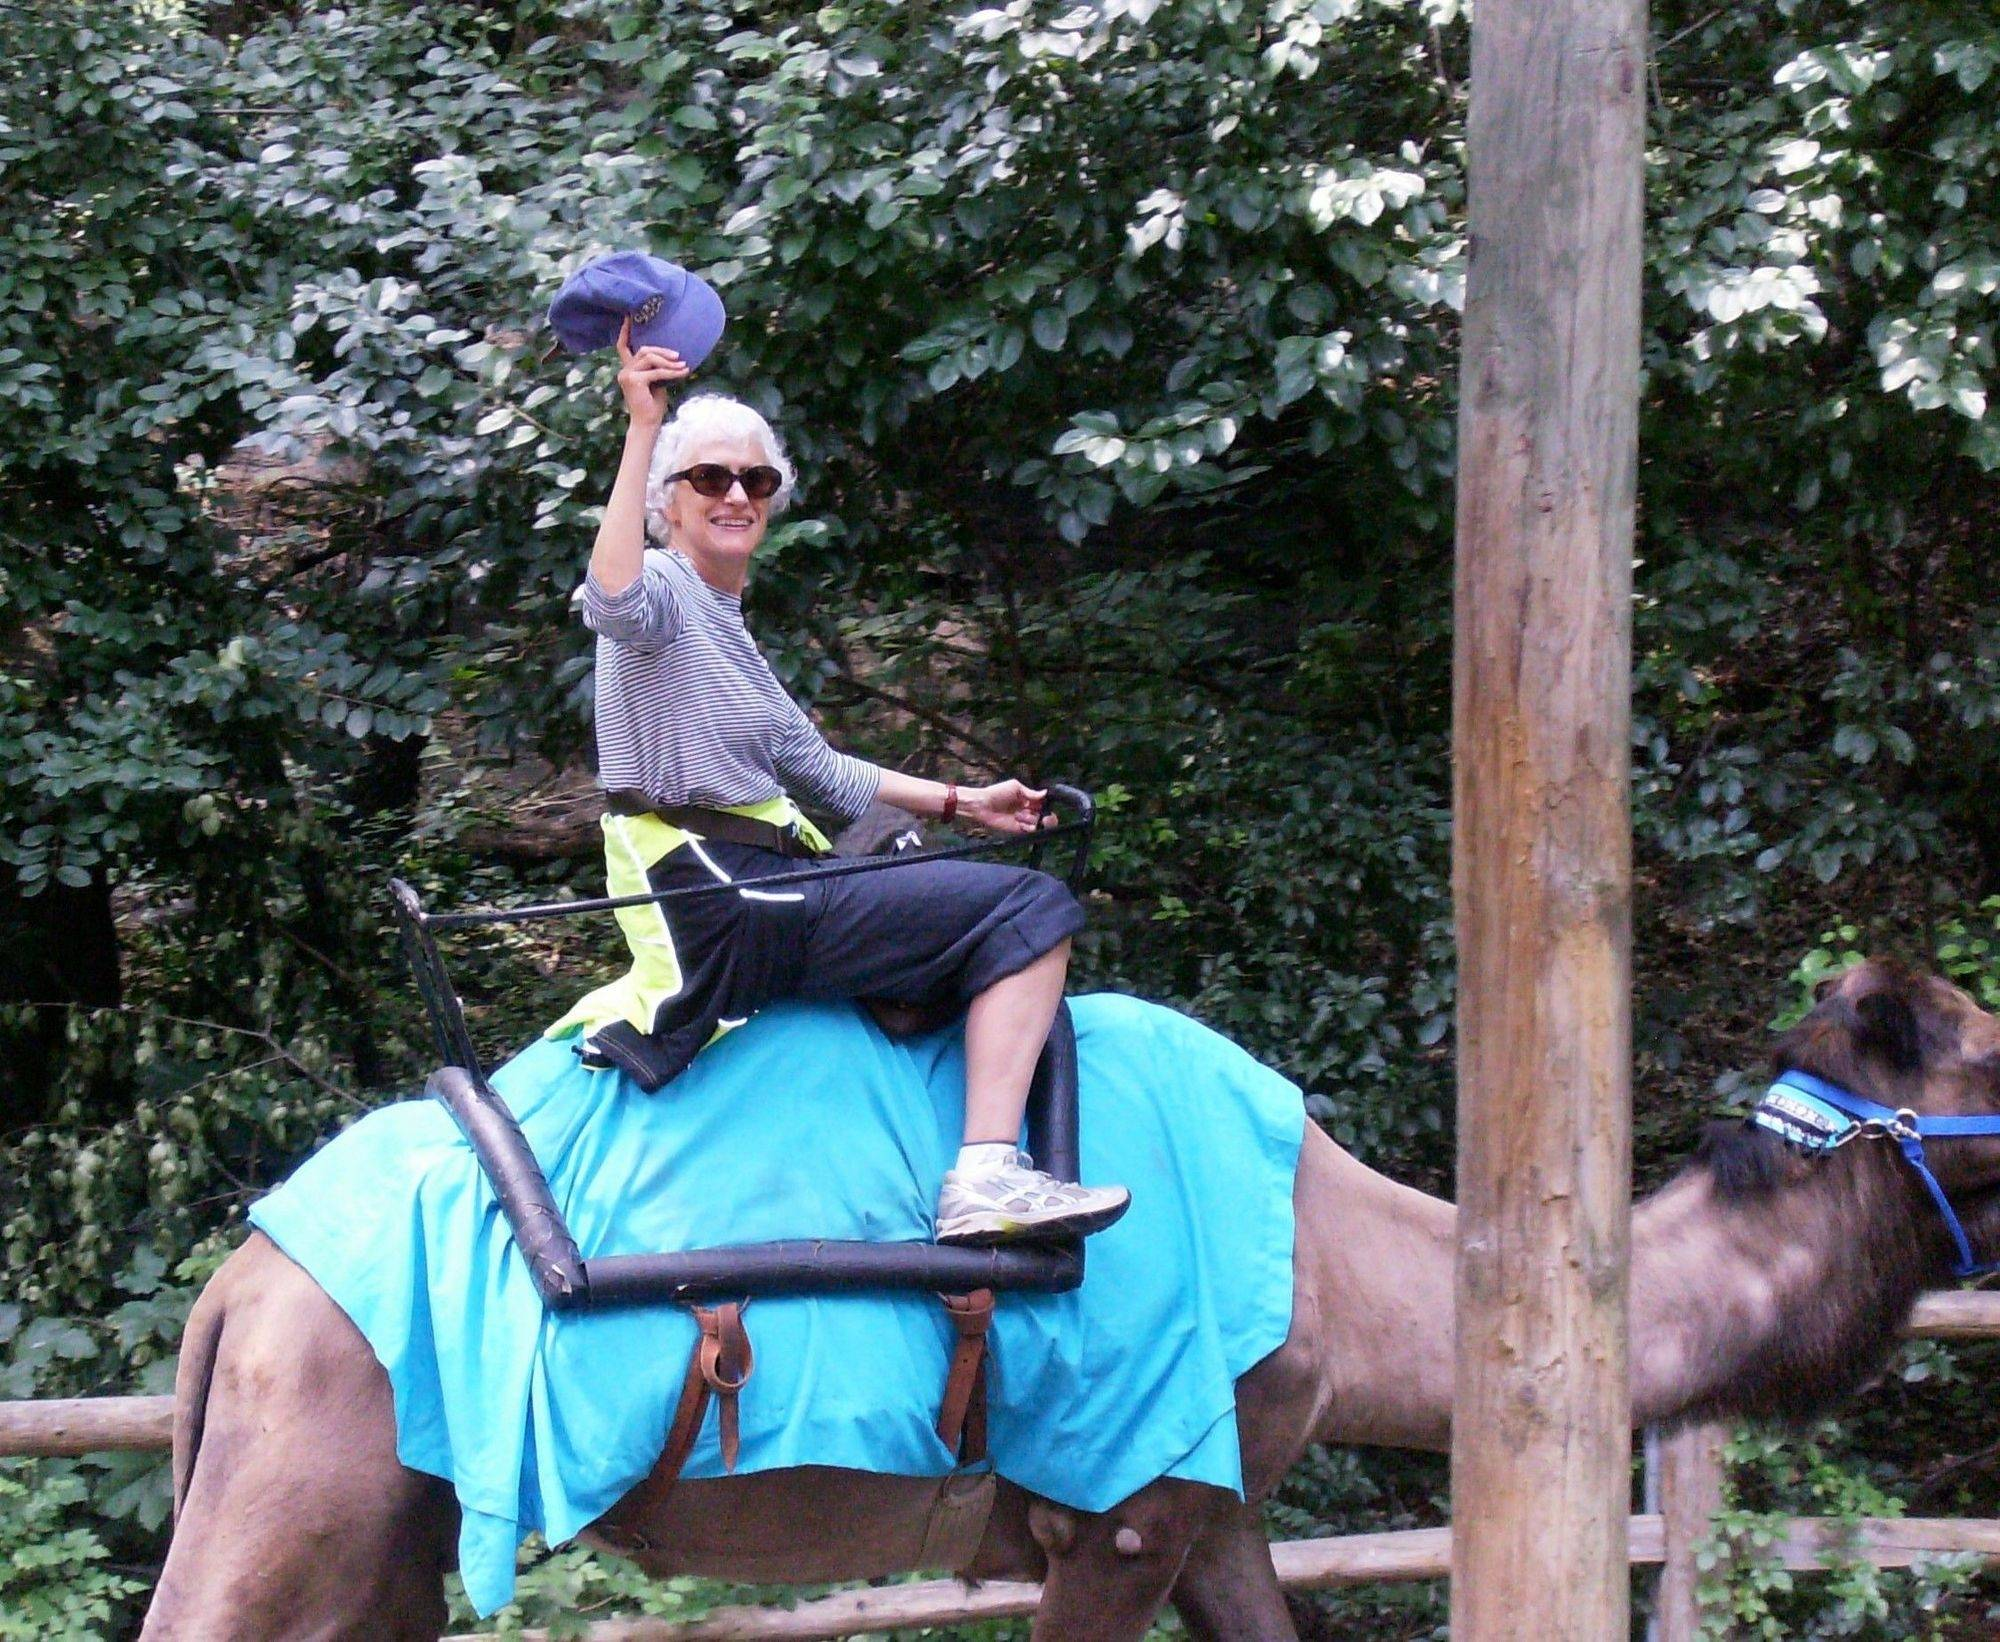 When author Sara Paretsky is not writing she is fun-loving, even if that means riding a camel at the Bronx Park Zoo in New York City.